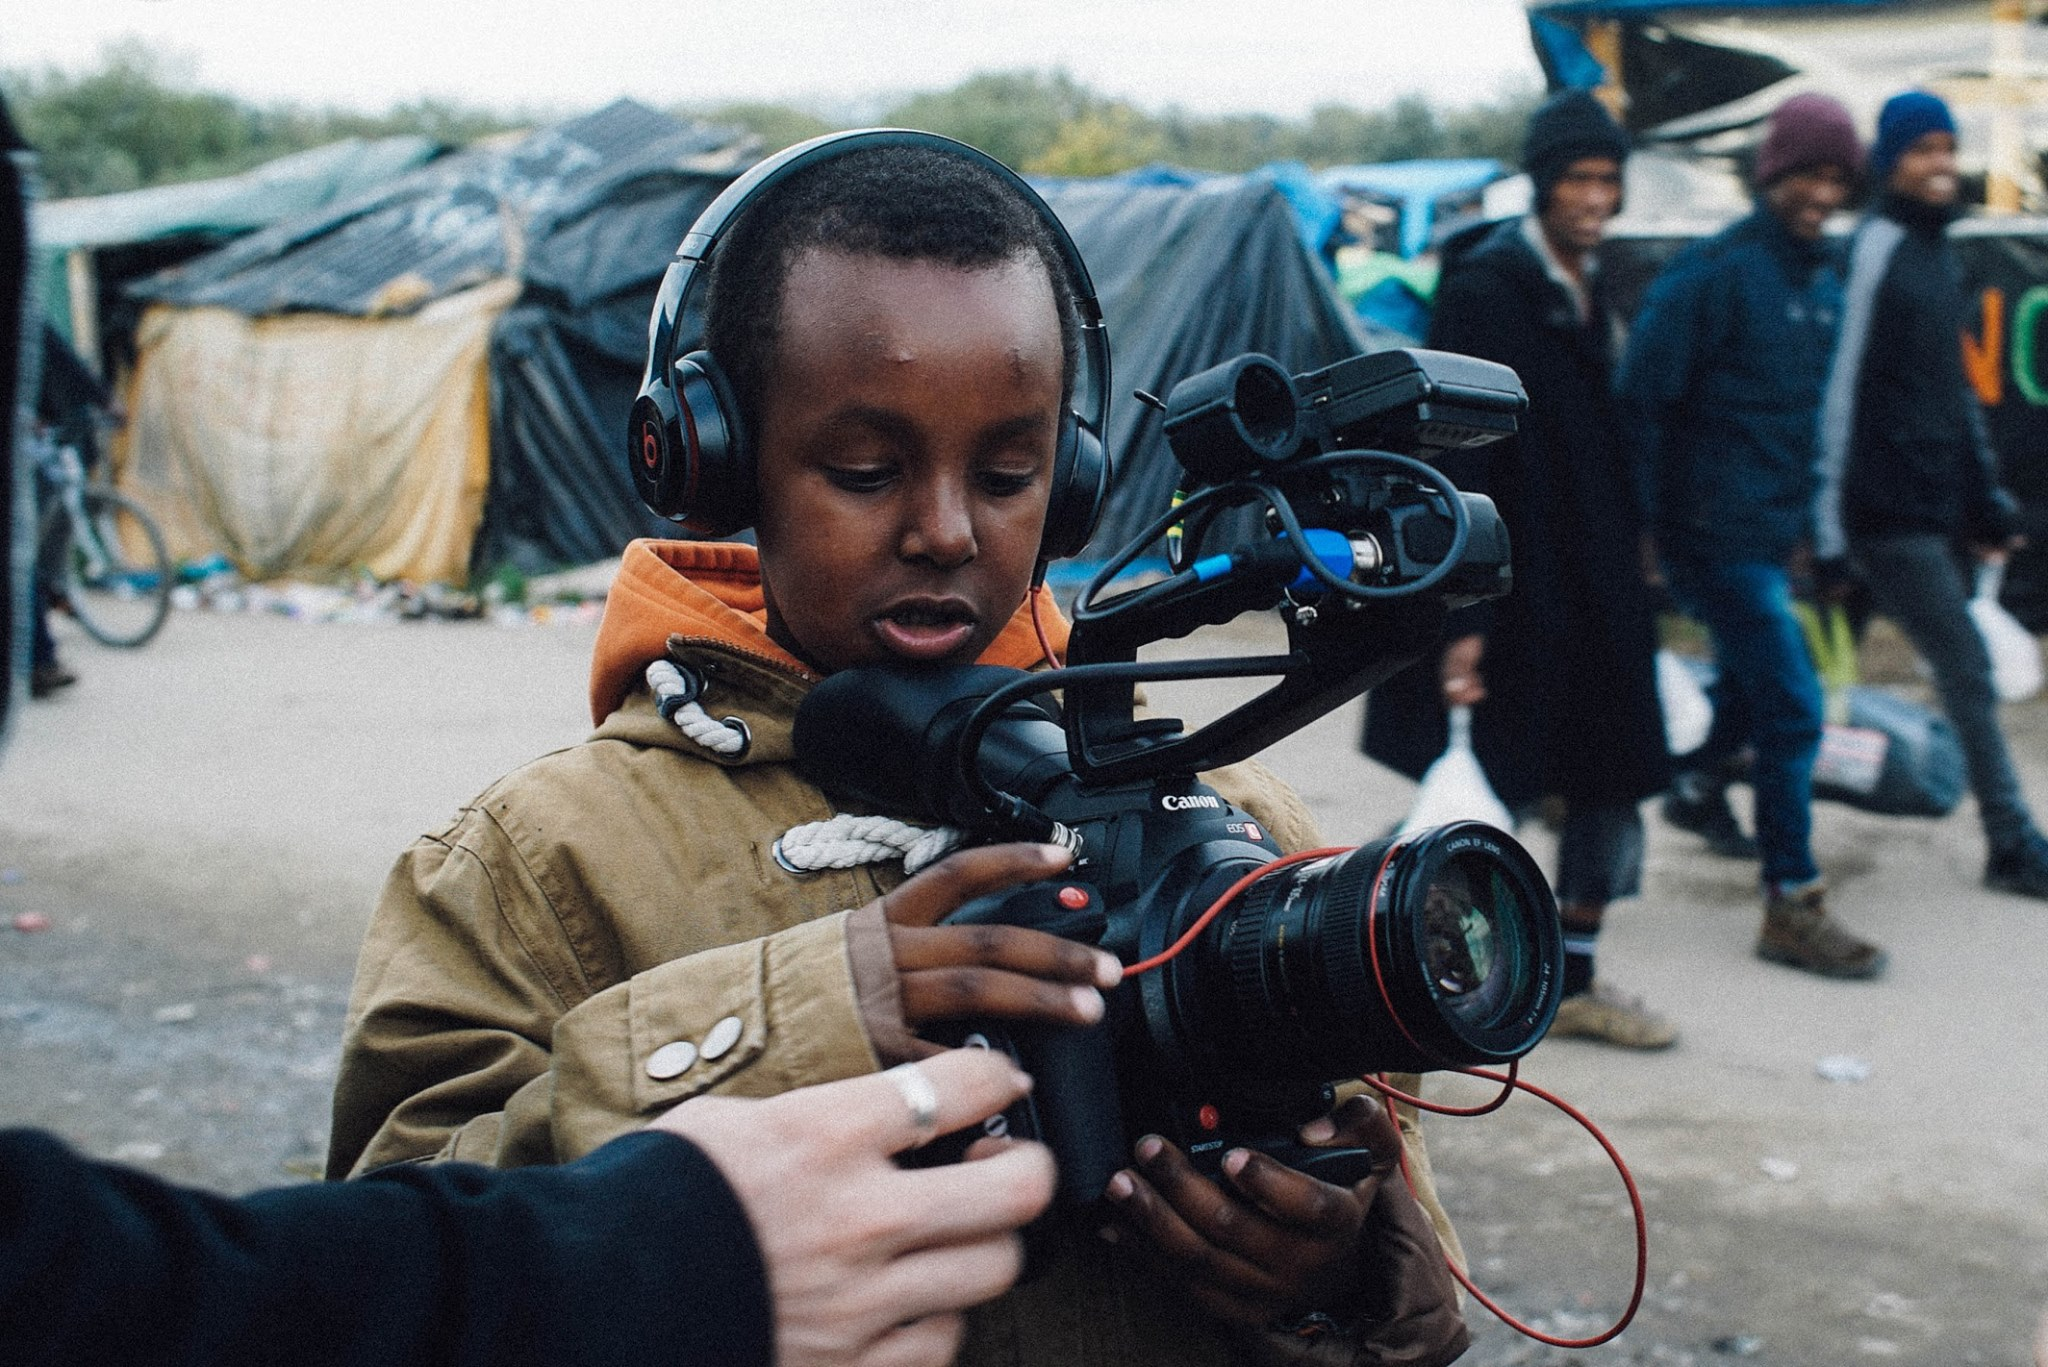 nahom playing with the camera in the jungle camp, in calais